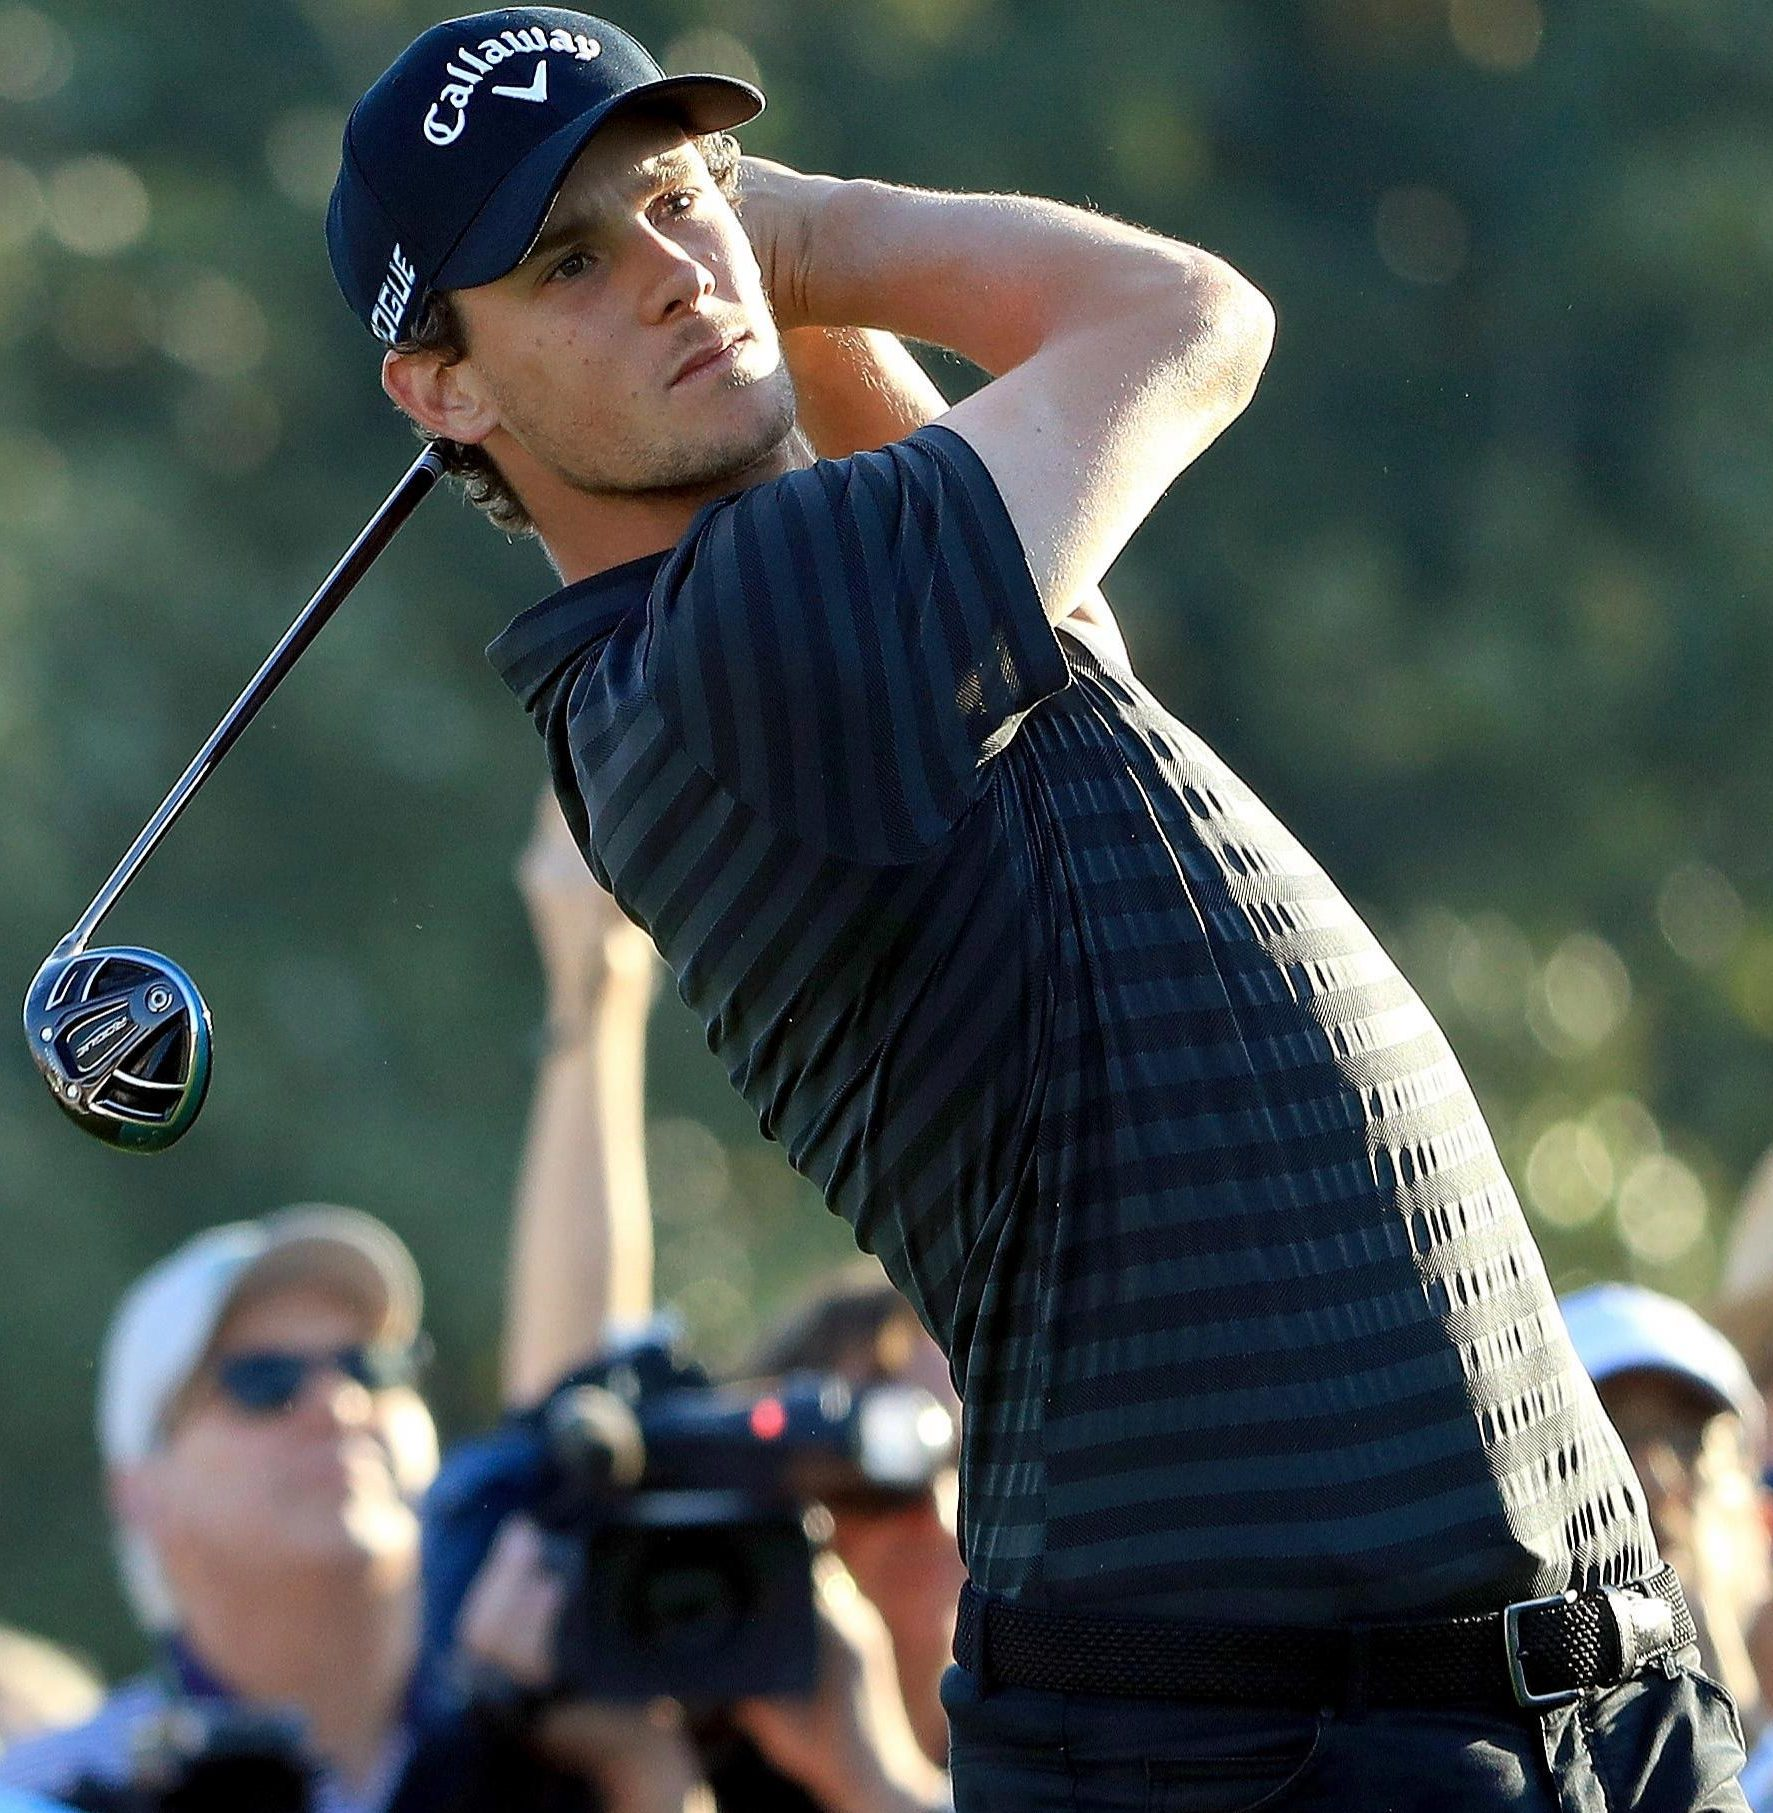 Thomas Pieters will win the Masters according to analysis using performance and personal data of every champion since 1934.